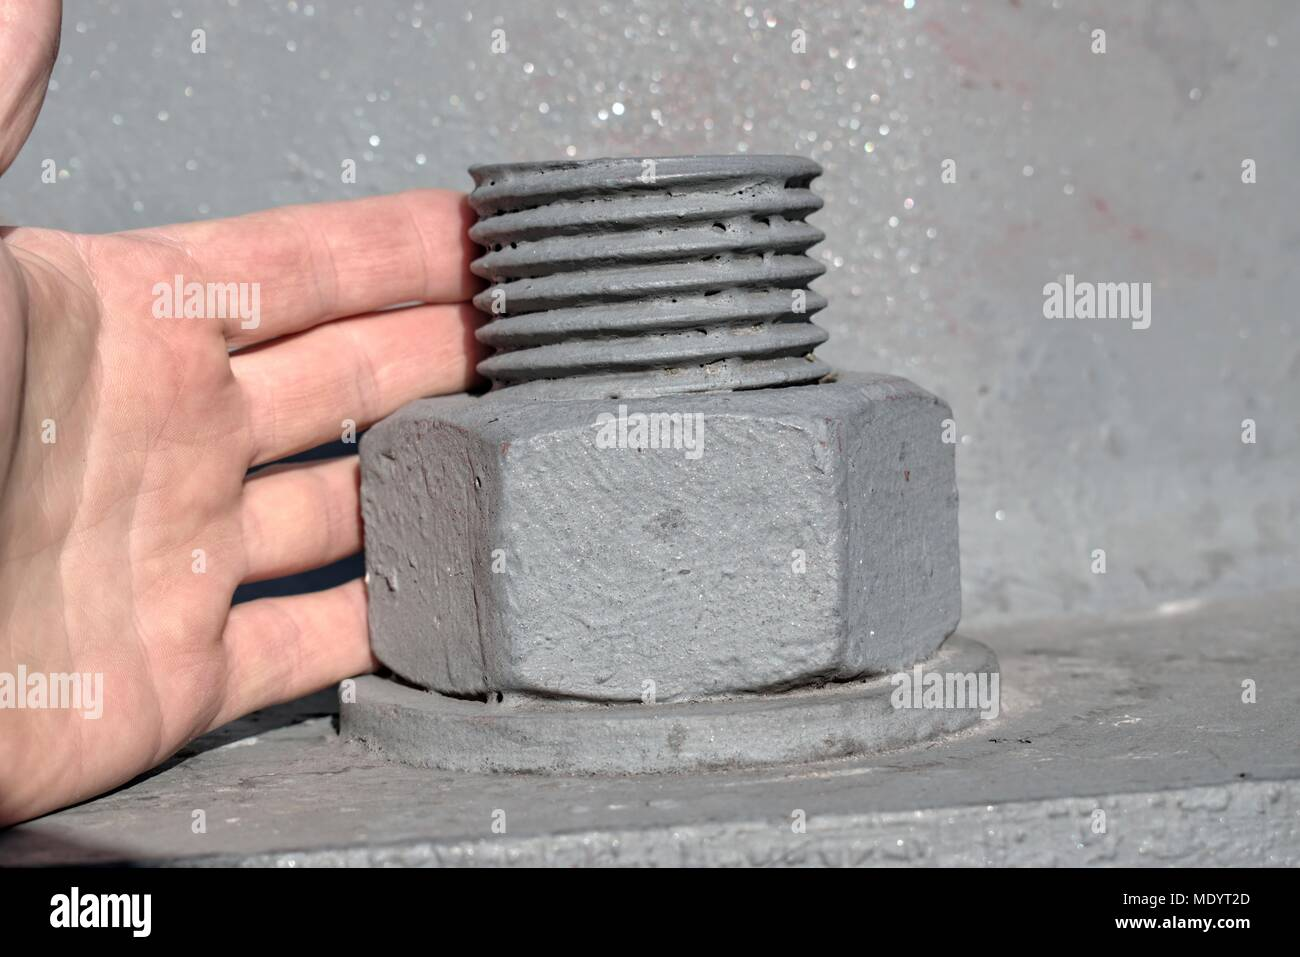 Technology,engineering,modernity and construction progress concept: large metal screw securing a high voltage pole,comparison with the hand of a man. - Stock Image